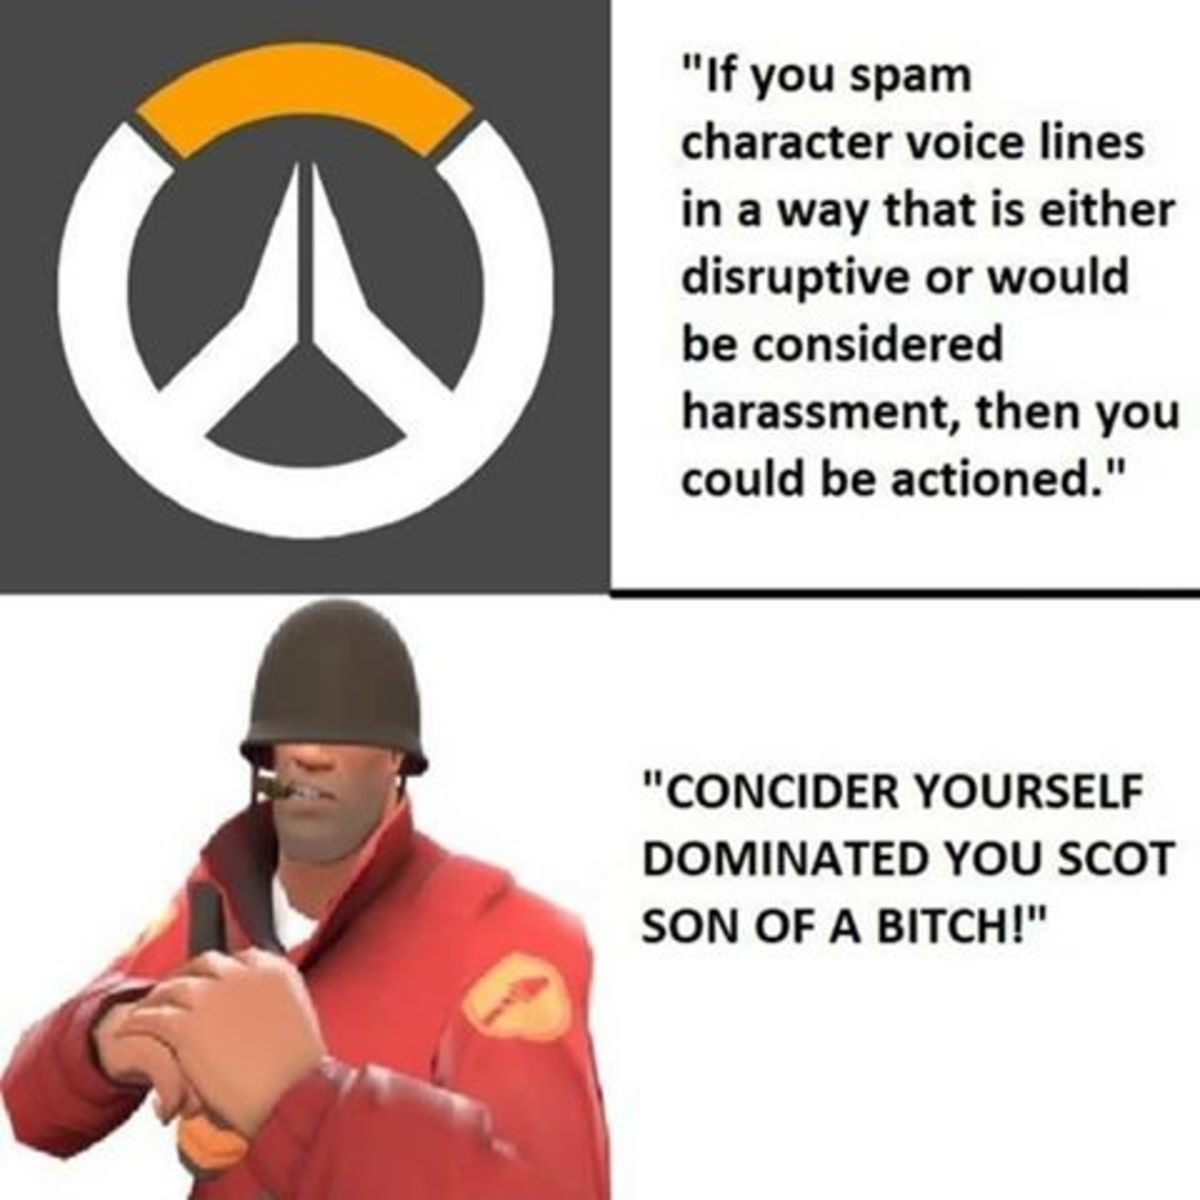 TF2 > Ovewatch. .. Overwatch: Paid game that will ban you for spoiling a movie TF2: Free game that not only allows inciting rage, but encourages it